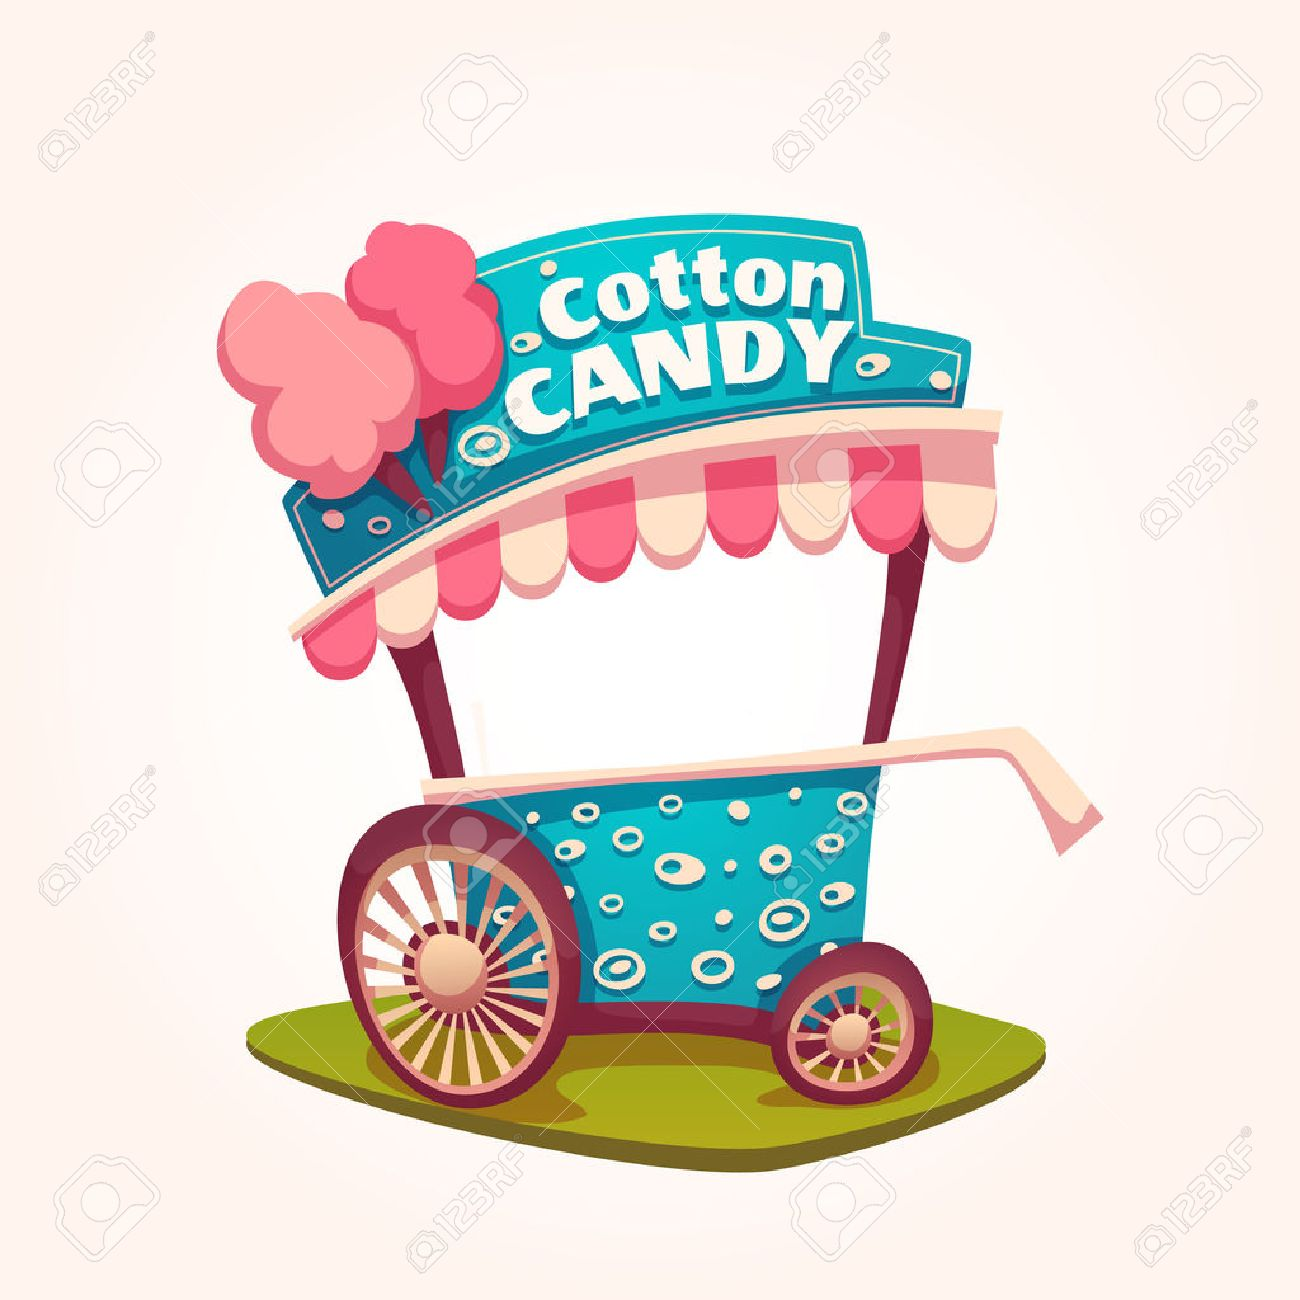 hight resolution of vector flat illustration of cotton candy cart illustration